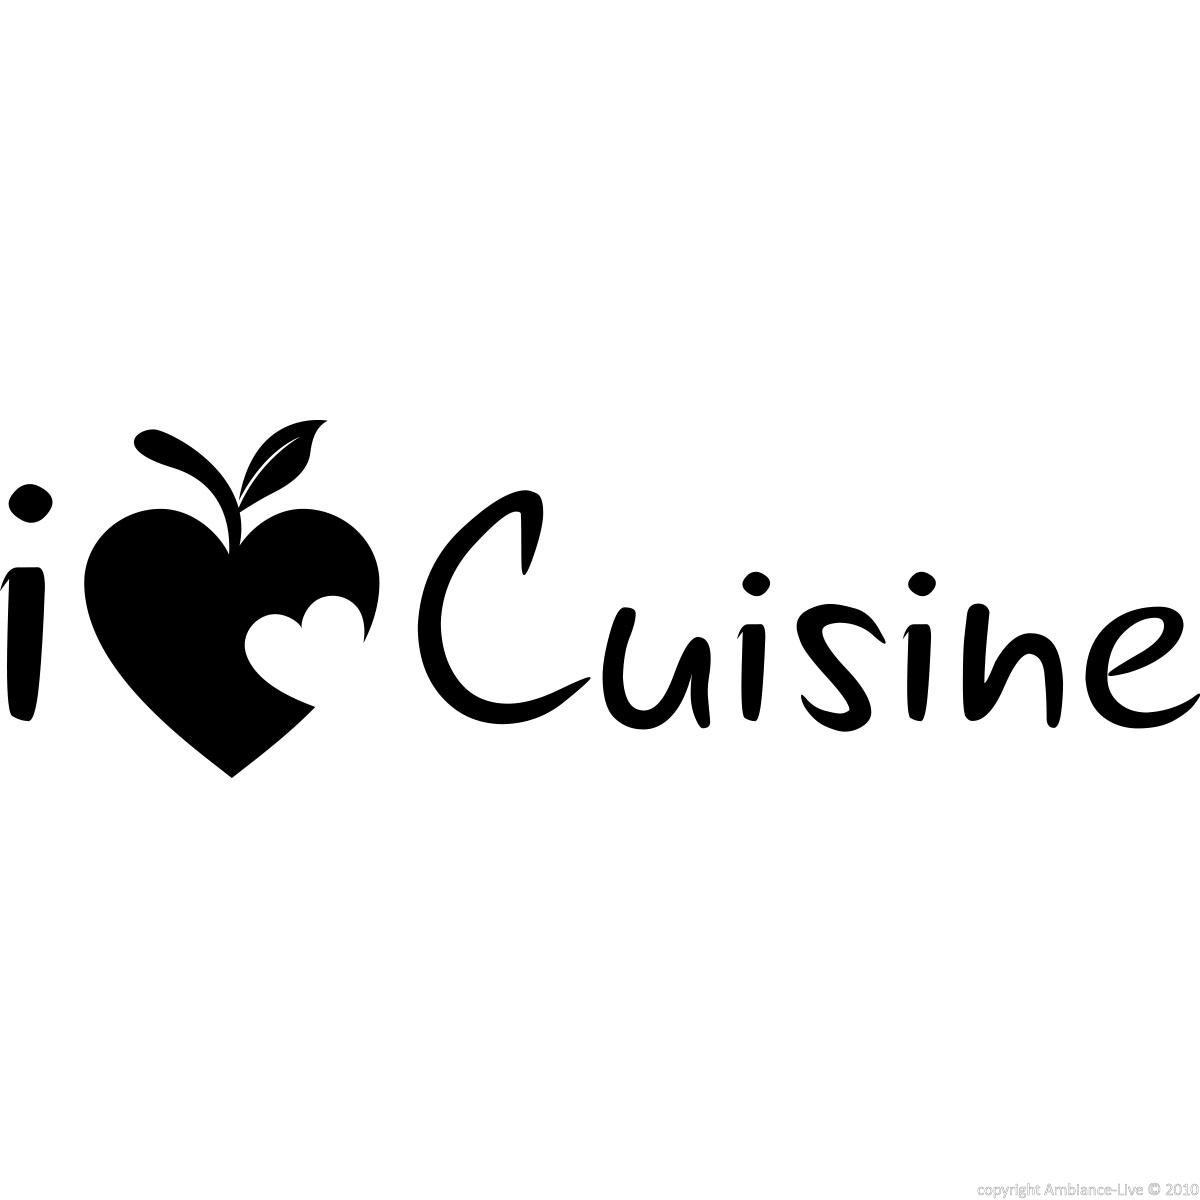 wall decal i love cuisine wall decal quotes french ambiance sticker. Black Bedroom Furniture Sets. Home Design Ideas